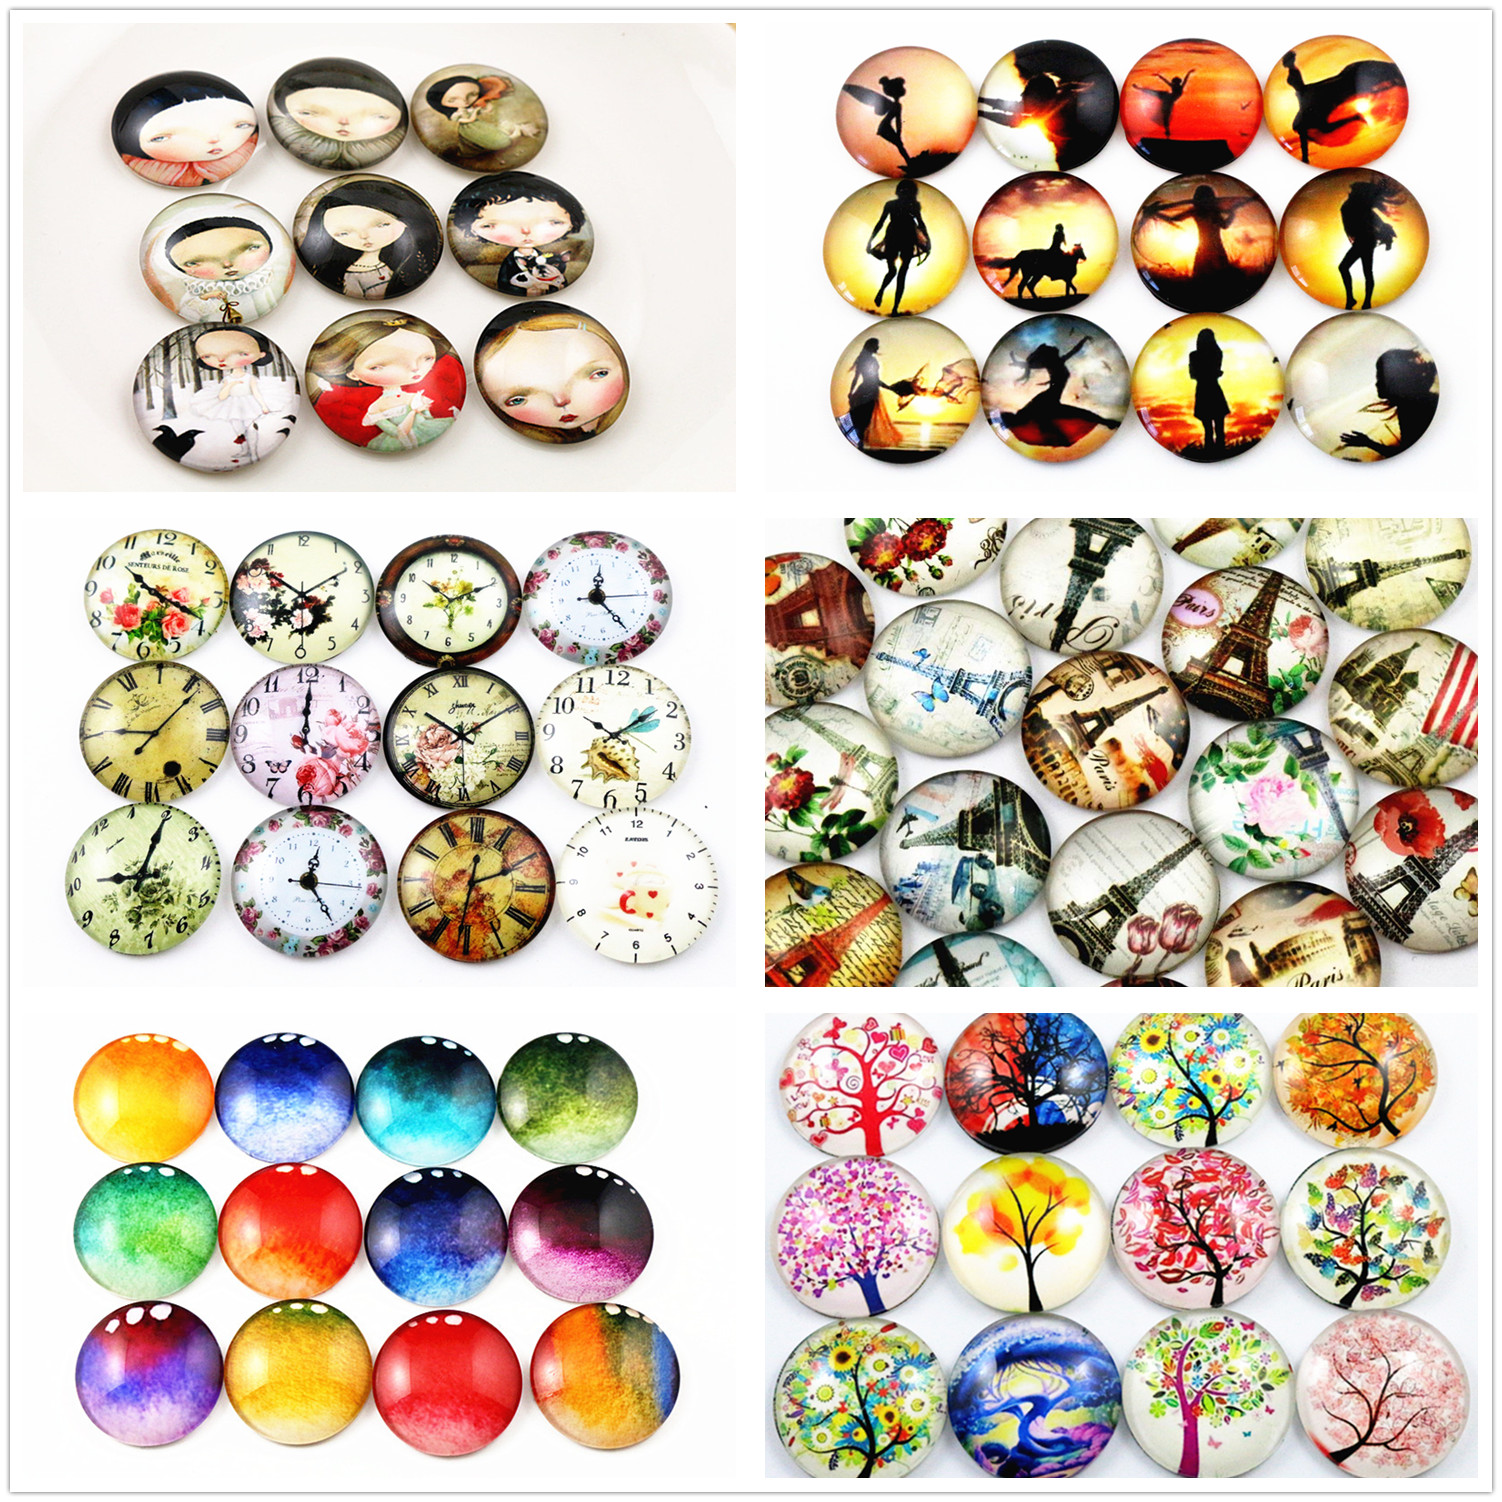 Hot Sale 10pcs 25mm New Fashion 6 Style Mixed Handmade Glass Cabochons Pattern Domed Jewelry Accessories Supplies